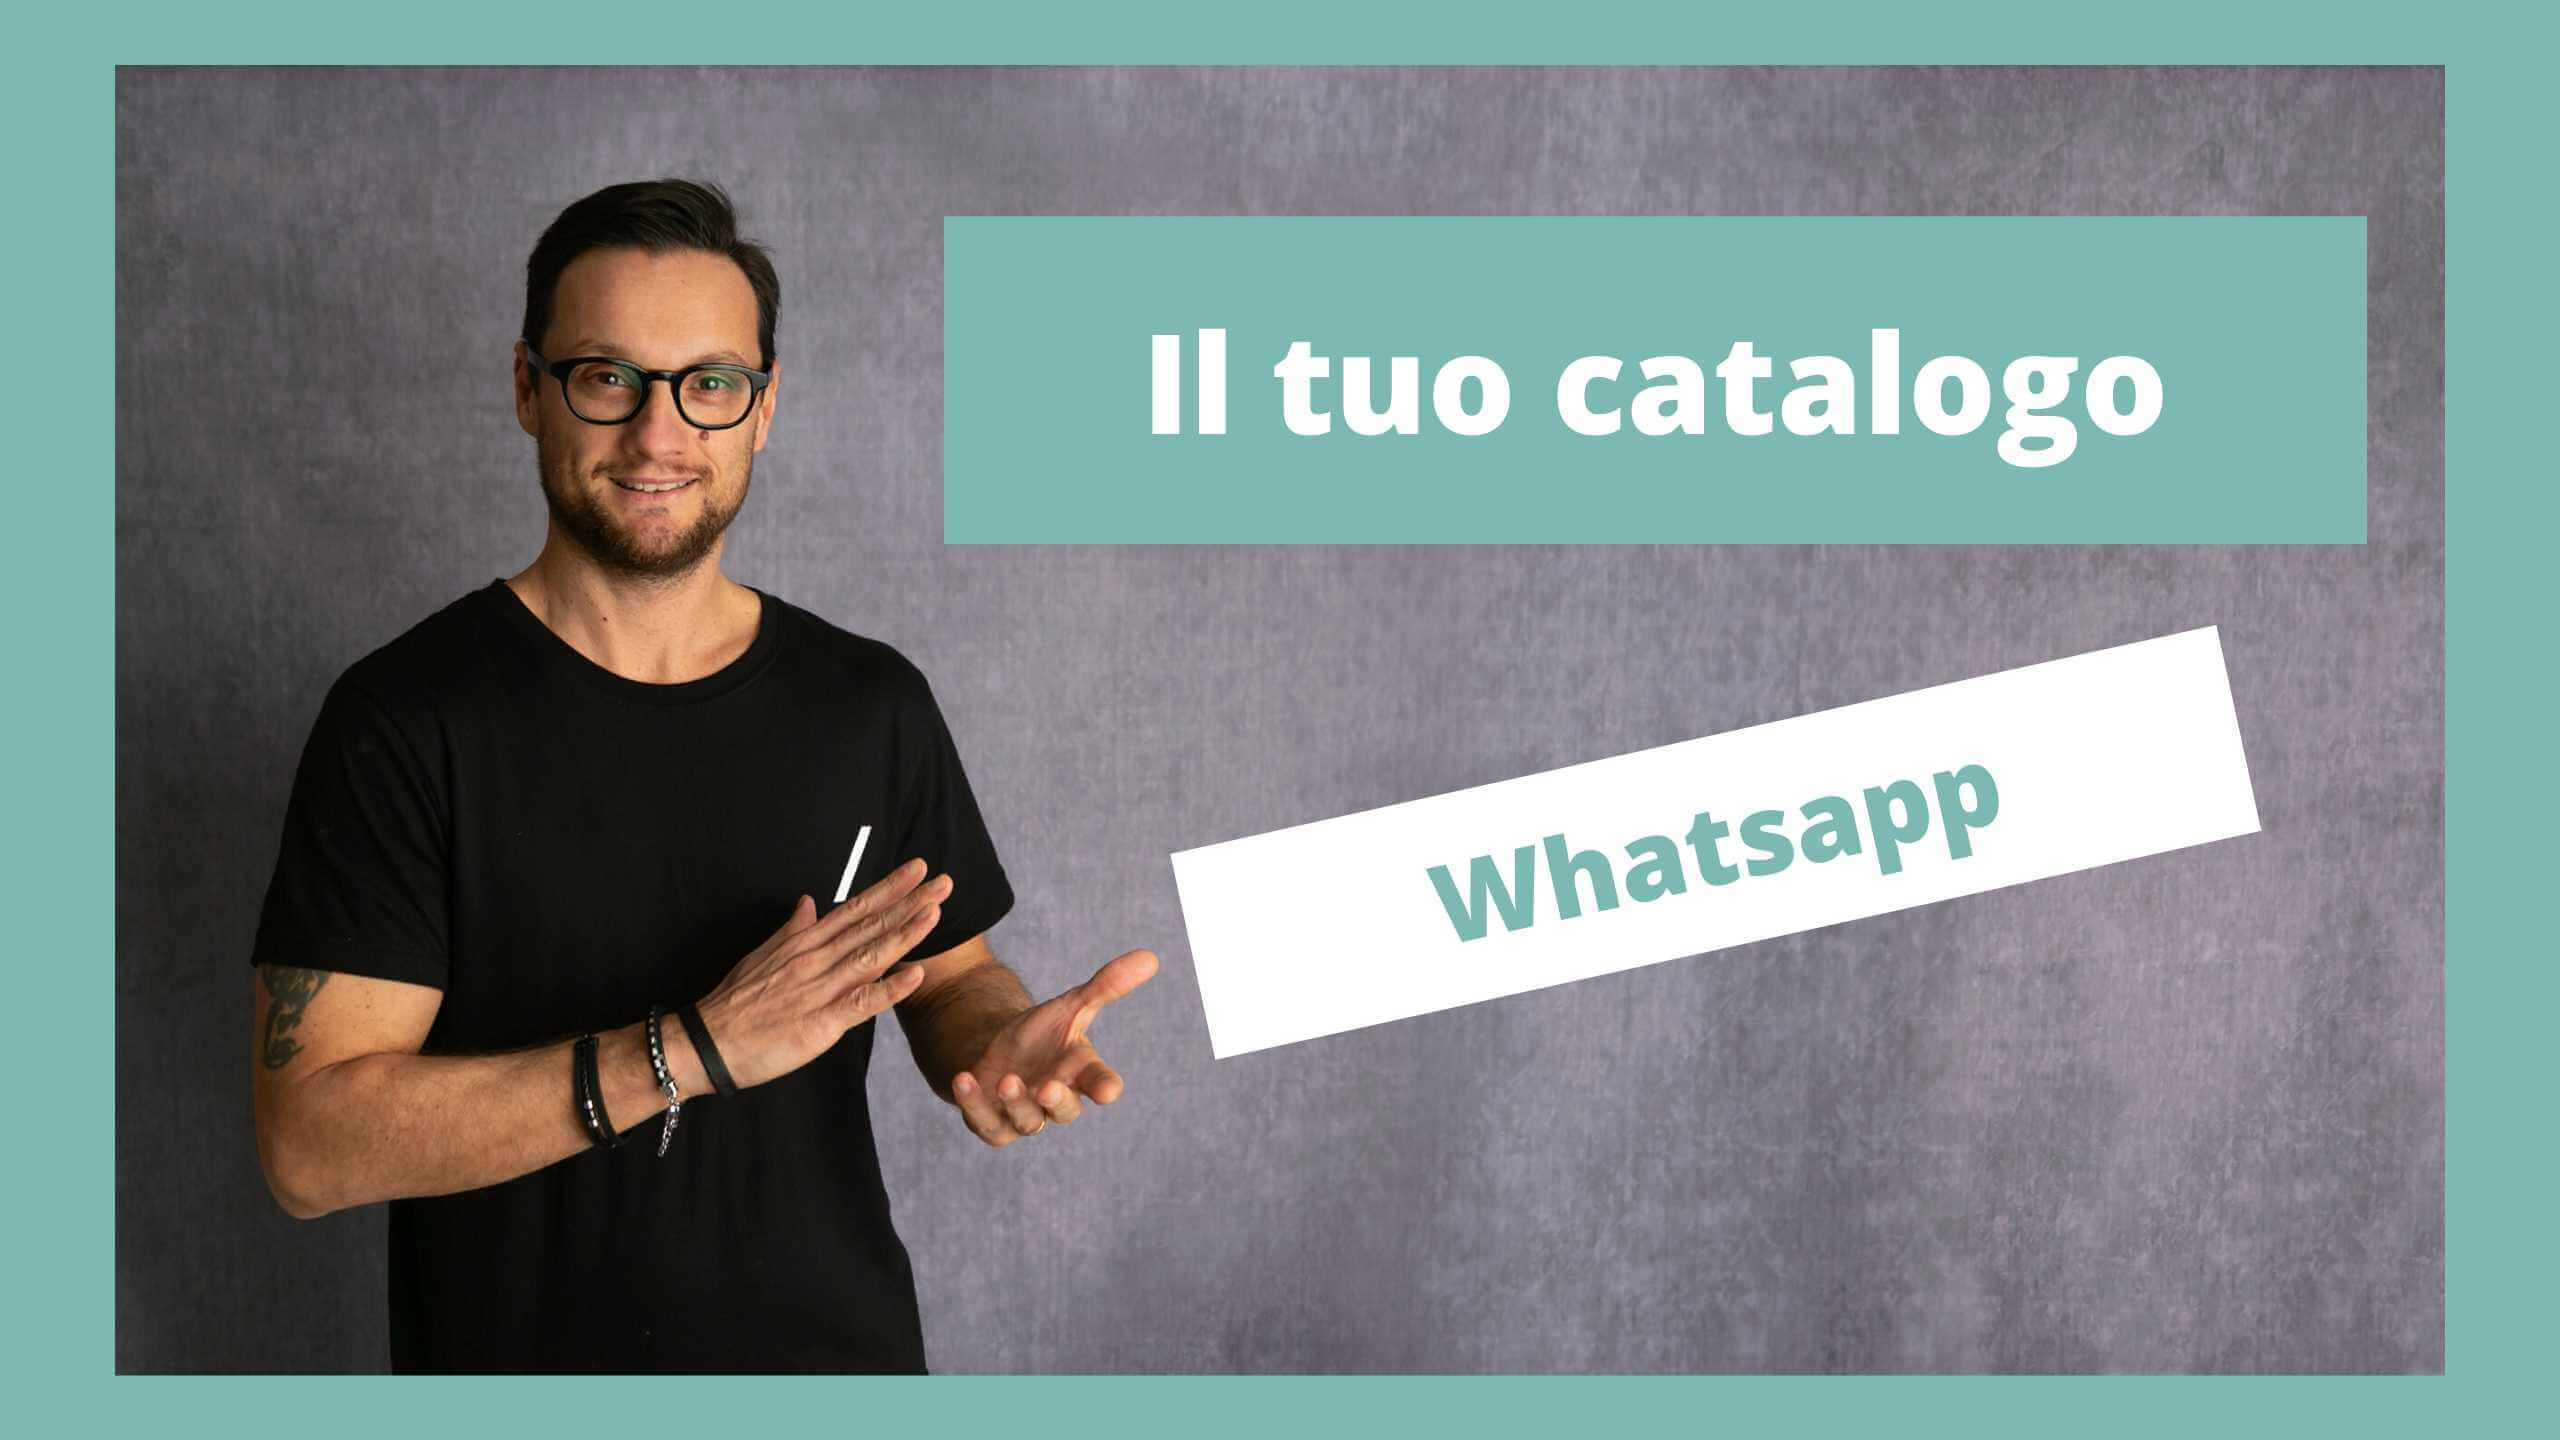 catalogo whatsapp